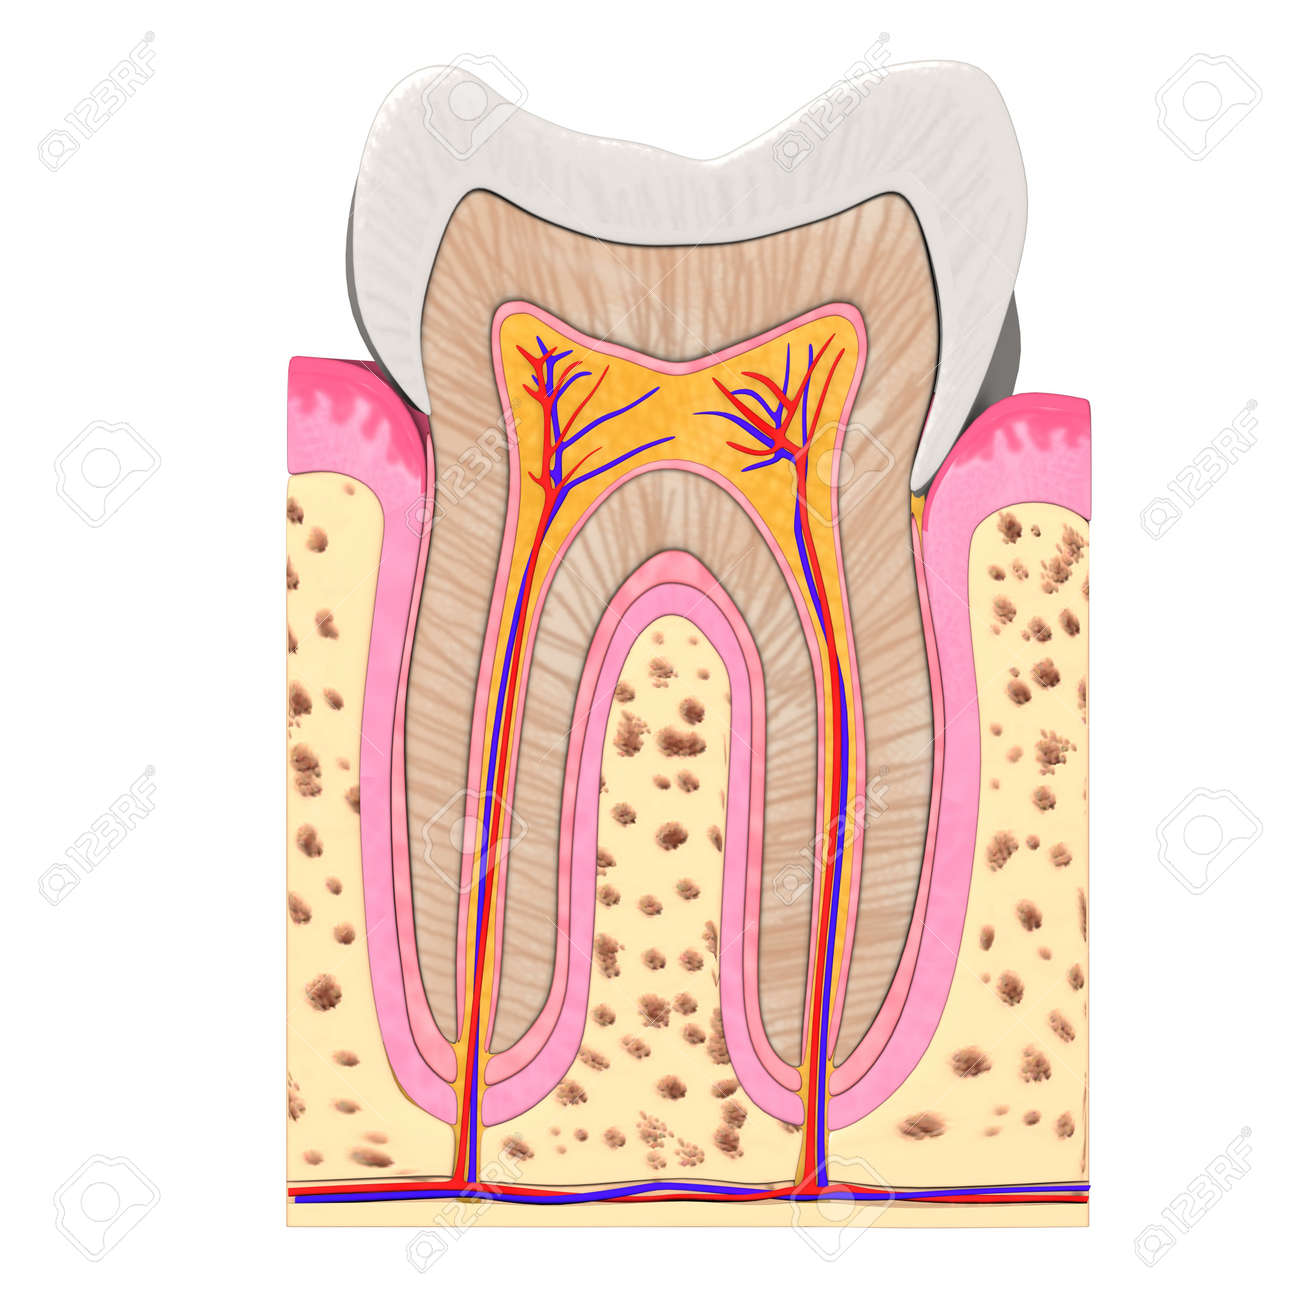 3d Render Of Teeth Anatomy Stock Photo, Picture And Royalty Free ...